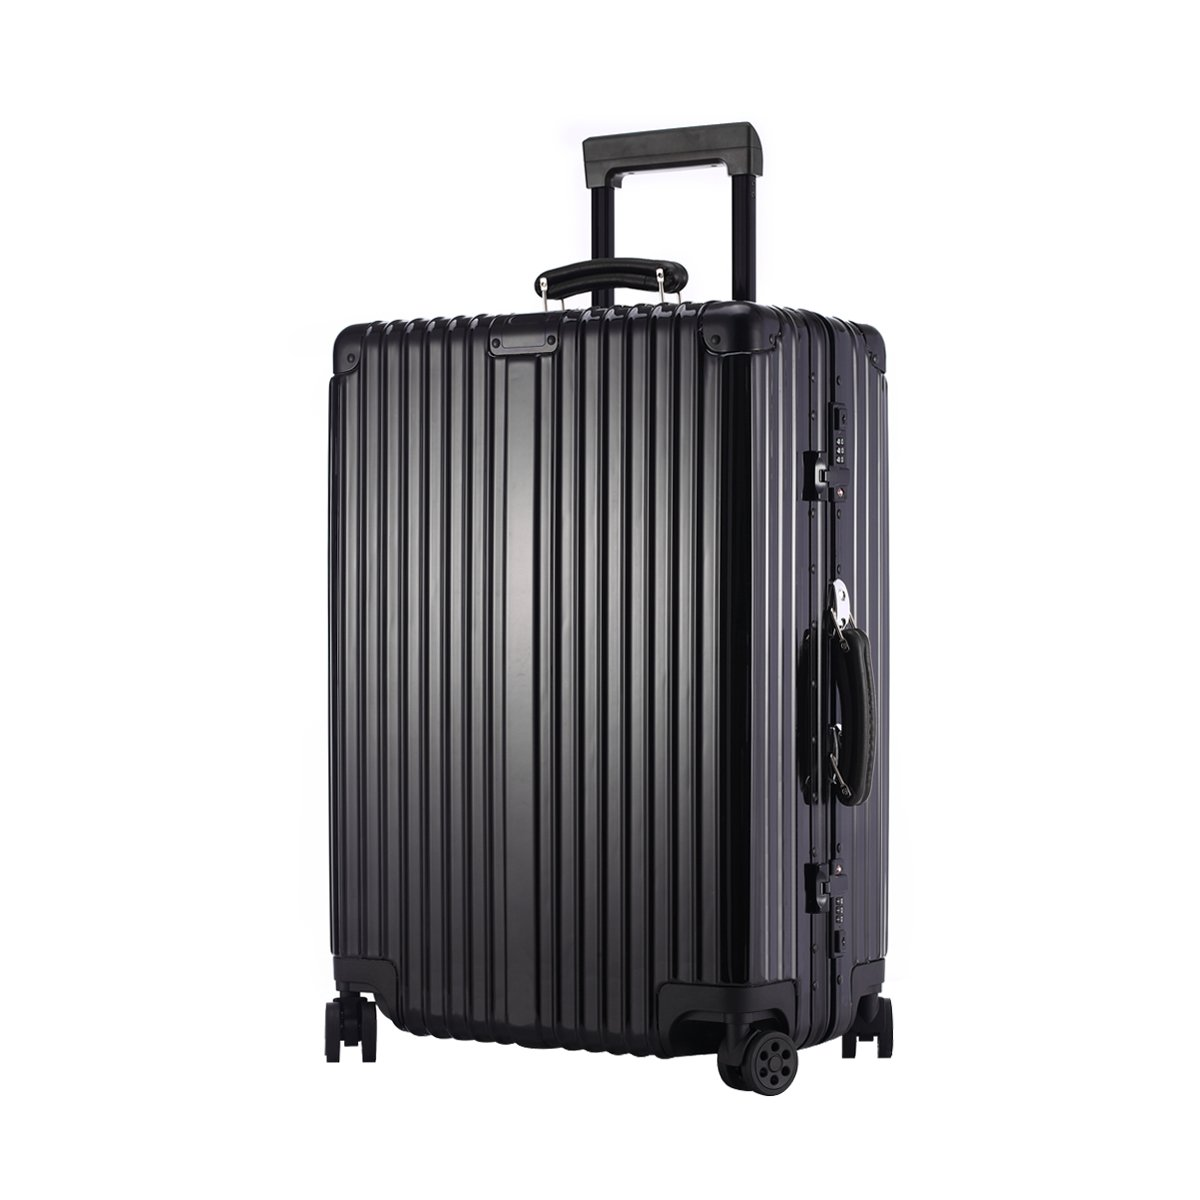 URSTAR Aluminium Frame Luggage TSA Approved Spinner Wheels (29'', Black)